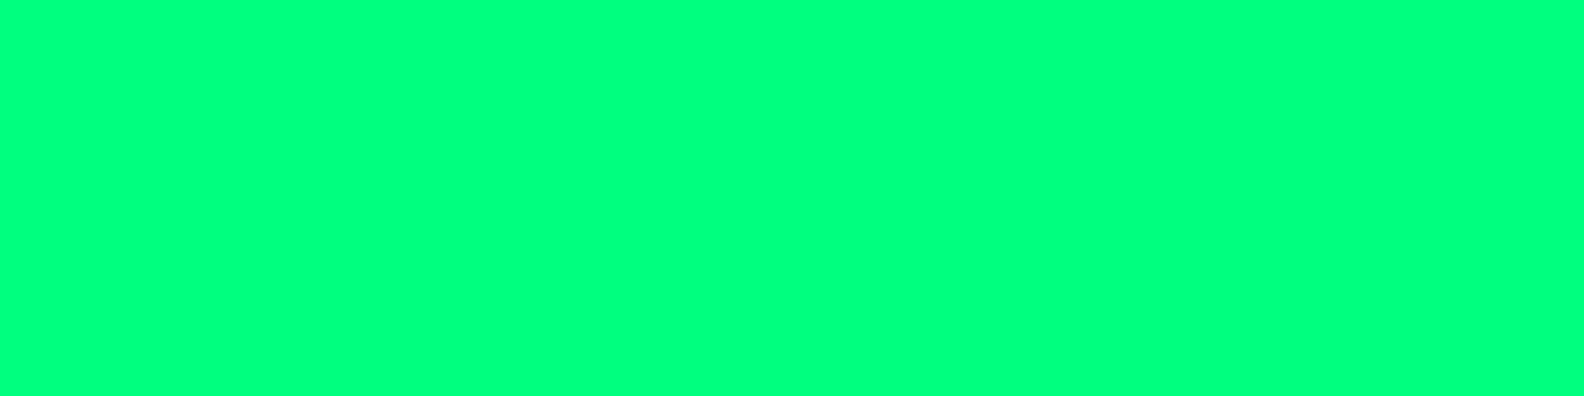 1584x396 Spring Green Solid Color Background